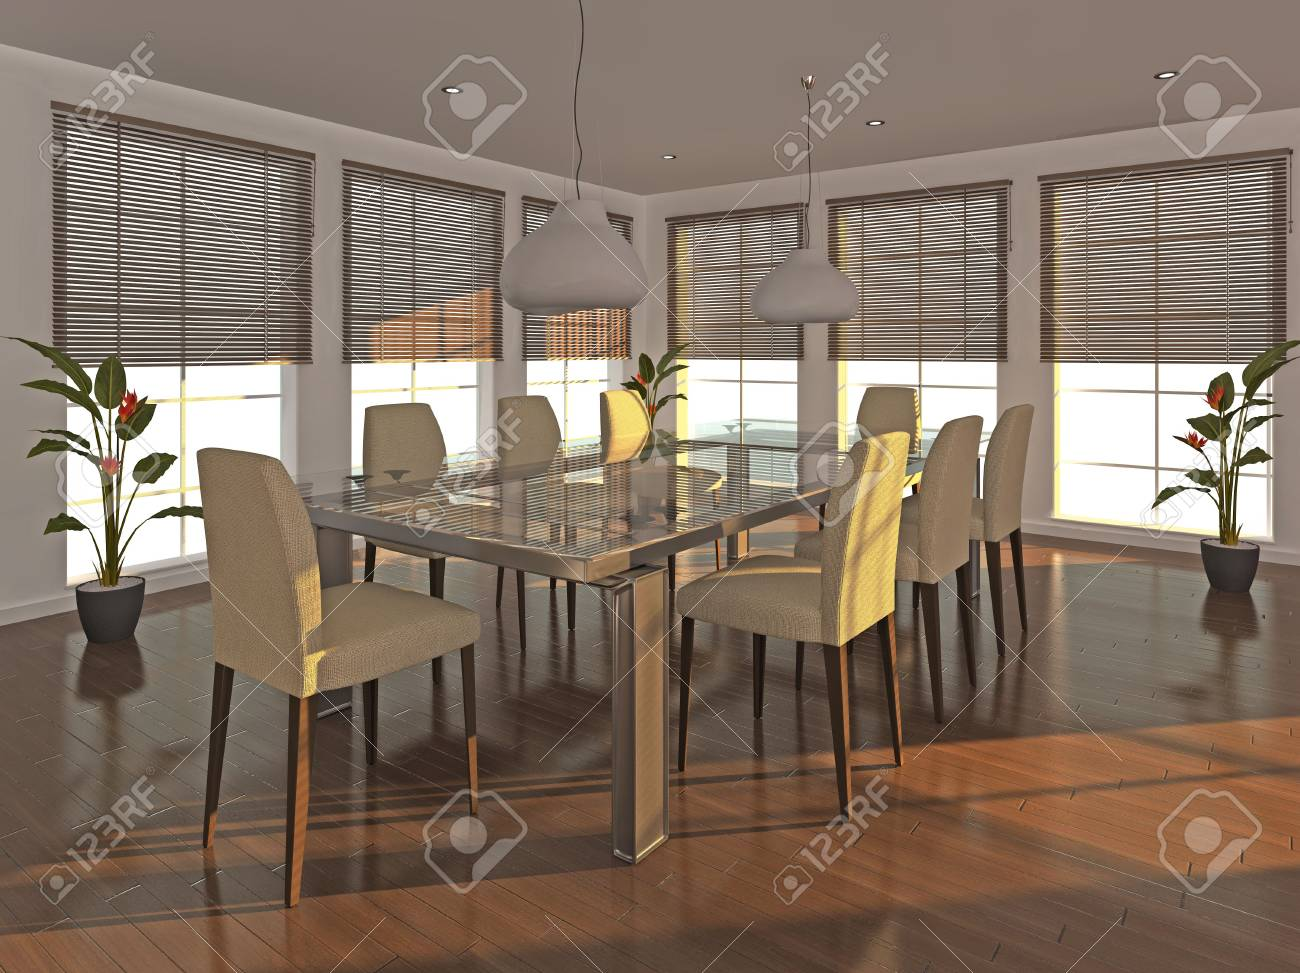 High quality illustration of a dining room interior in the early evening. Stock Illustration - 5460920